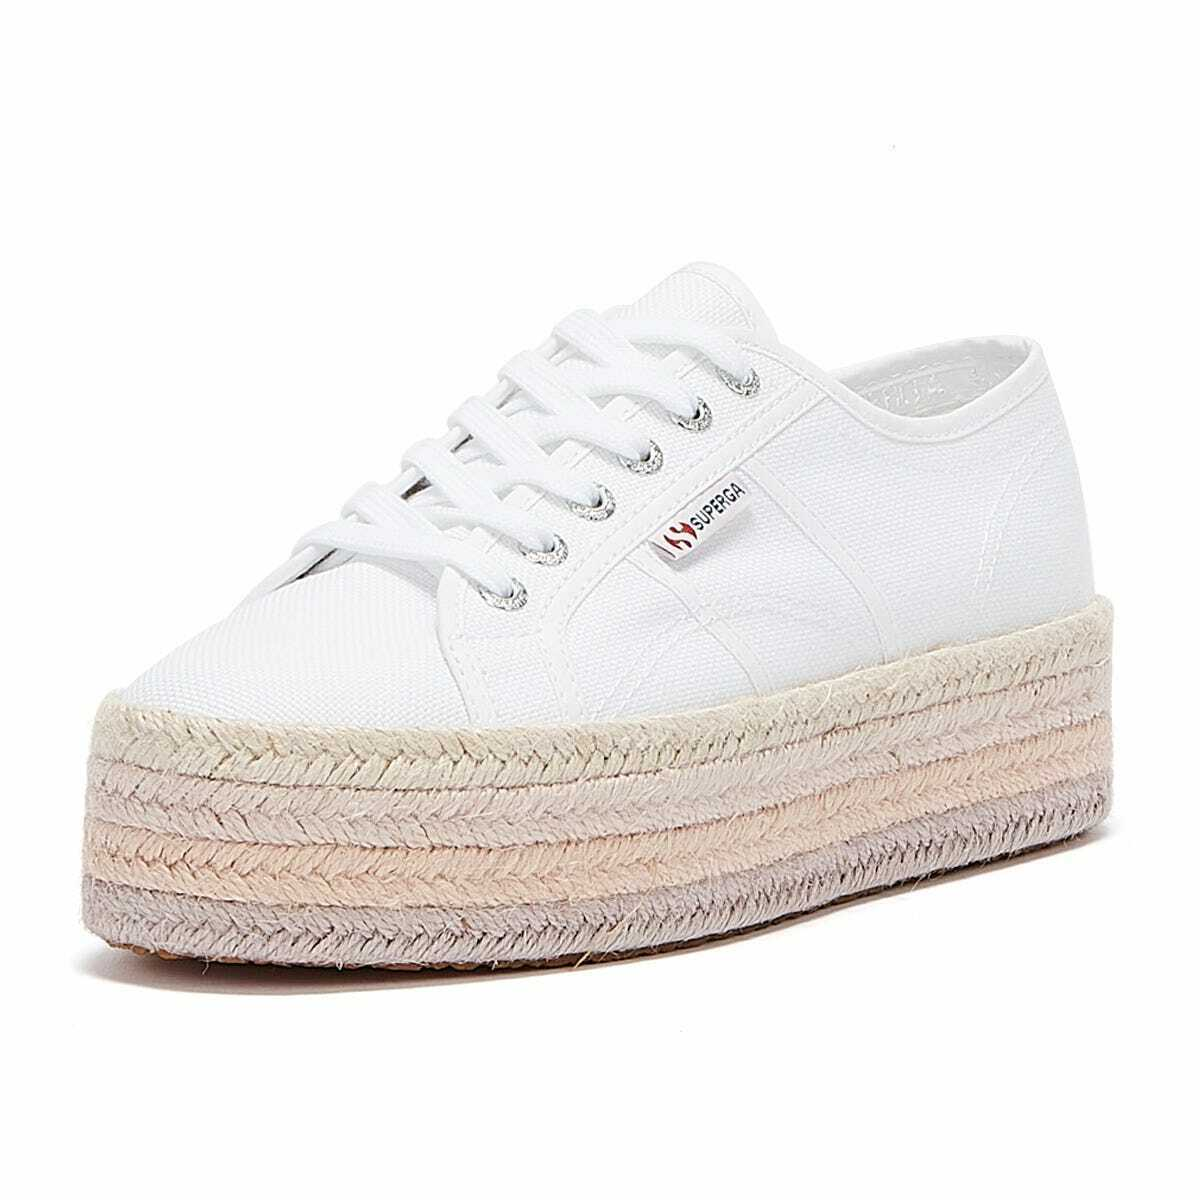 Superga 2790 COTROPE Womens White Pink Trainers Sports Athleisure Casual Shoes